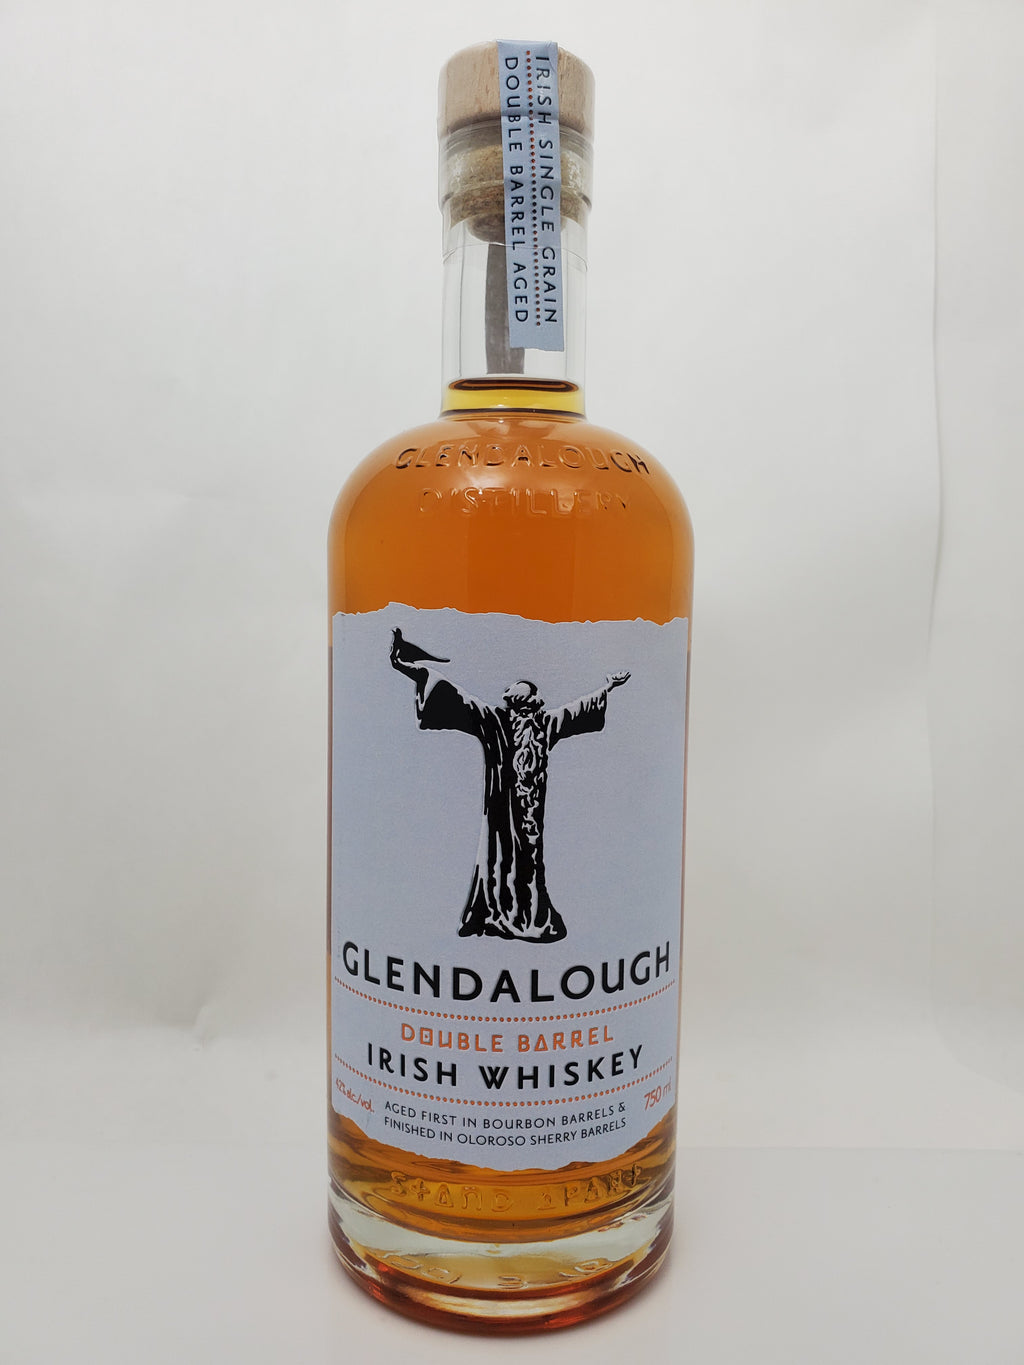 Glendalough Double Barel Irish Whiskey 750 ml